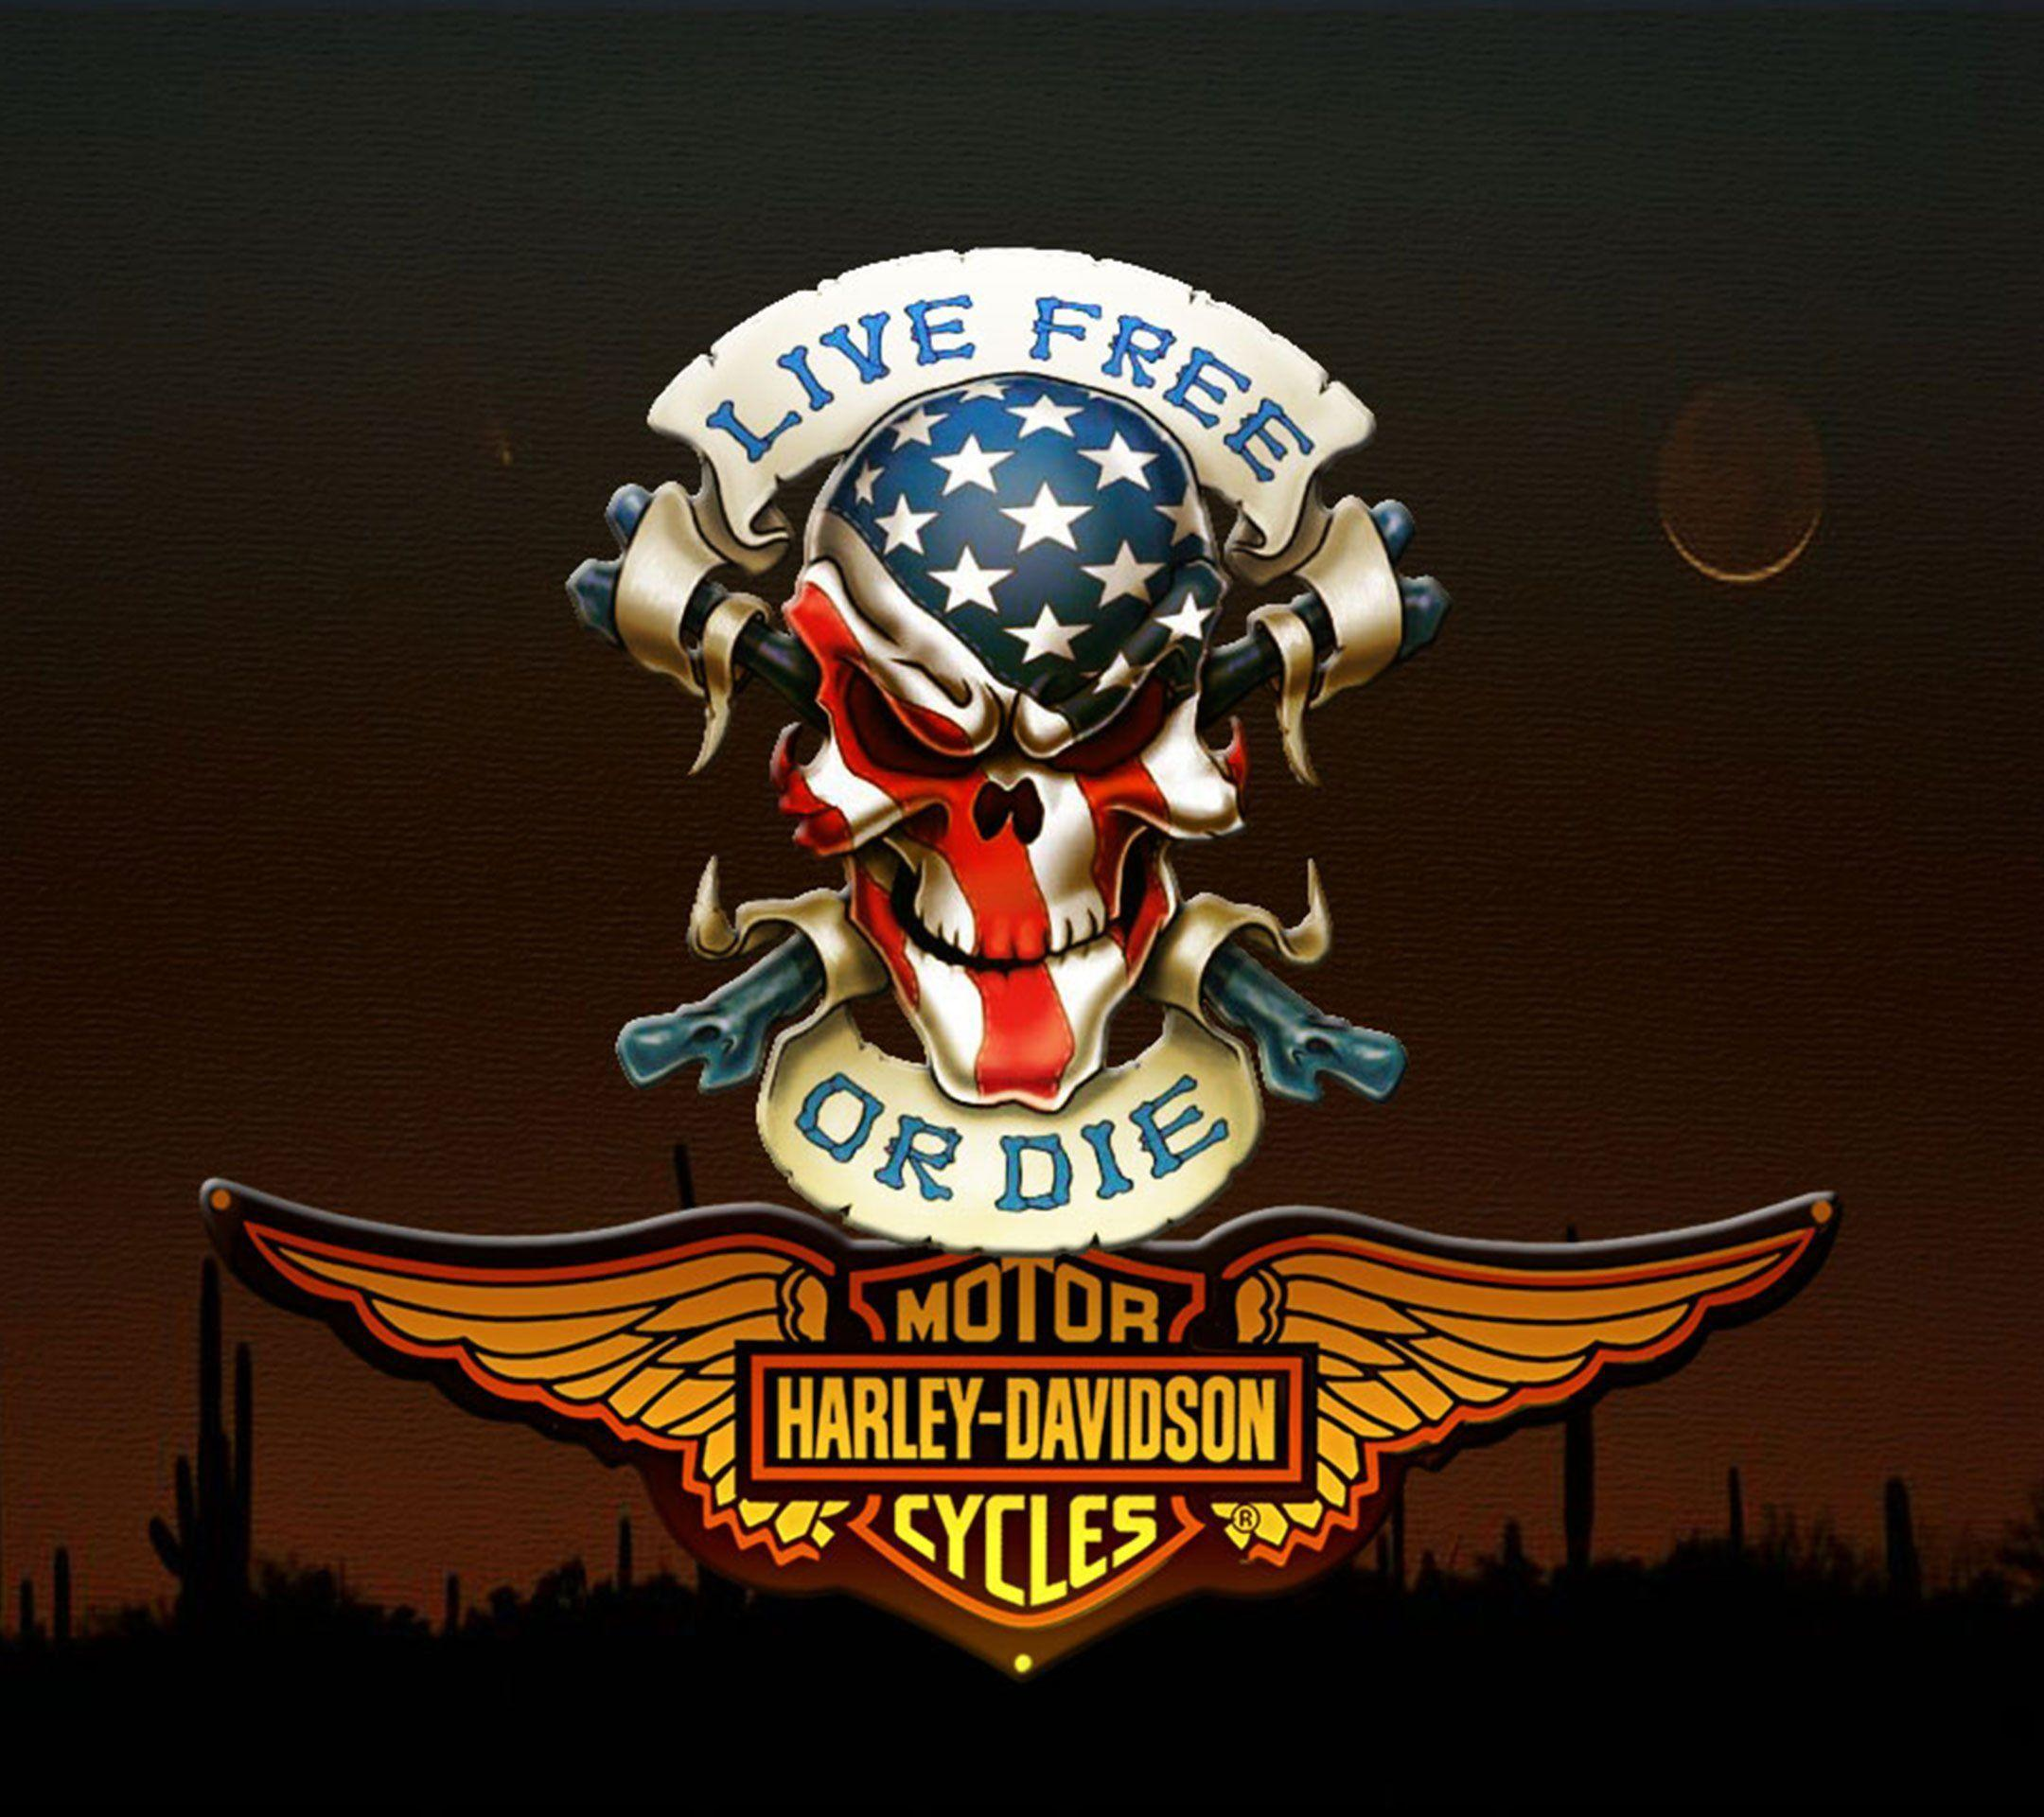 Hd Wallpapers 3d Art Tattoo Design: Harley-Davidson Logo Wallpapers